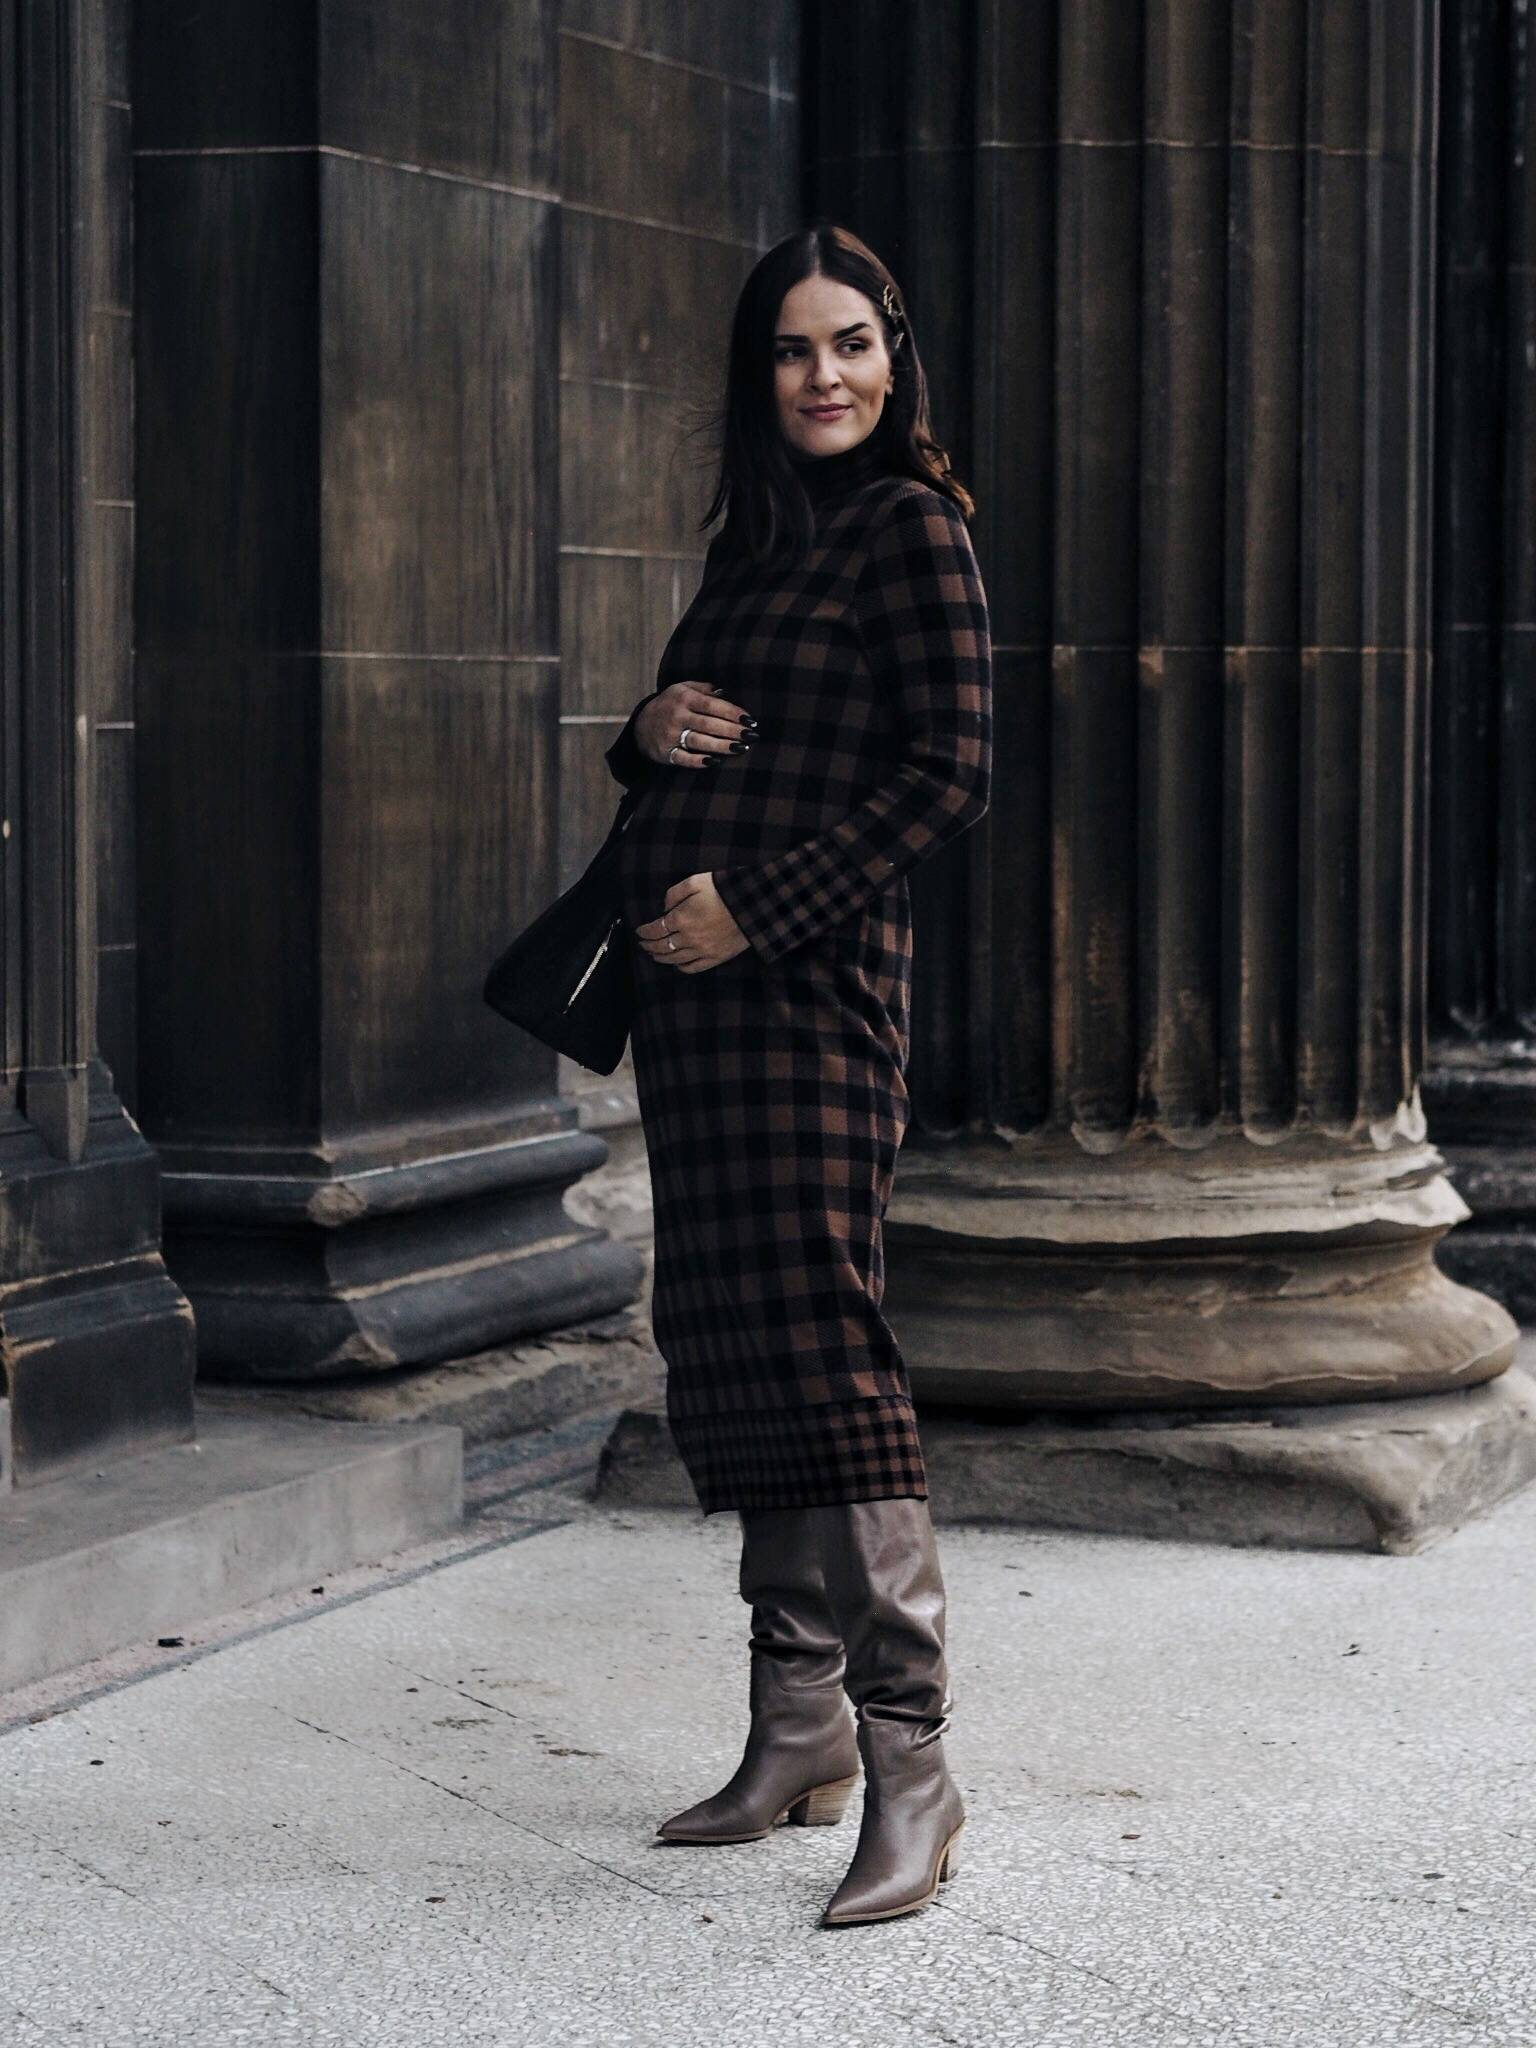 LAFOTKA-styles-Zara-maternity-check-dress-pregnancy-chic-style